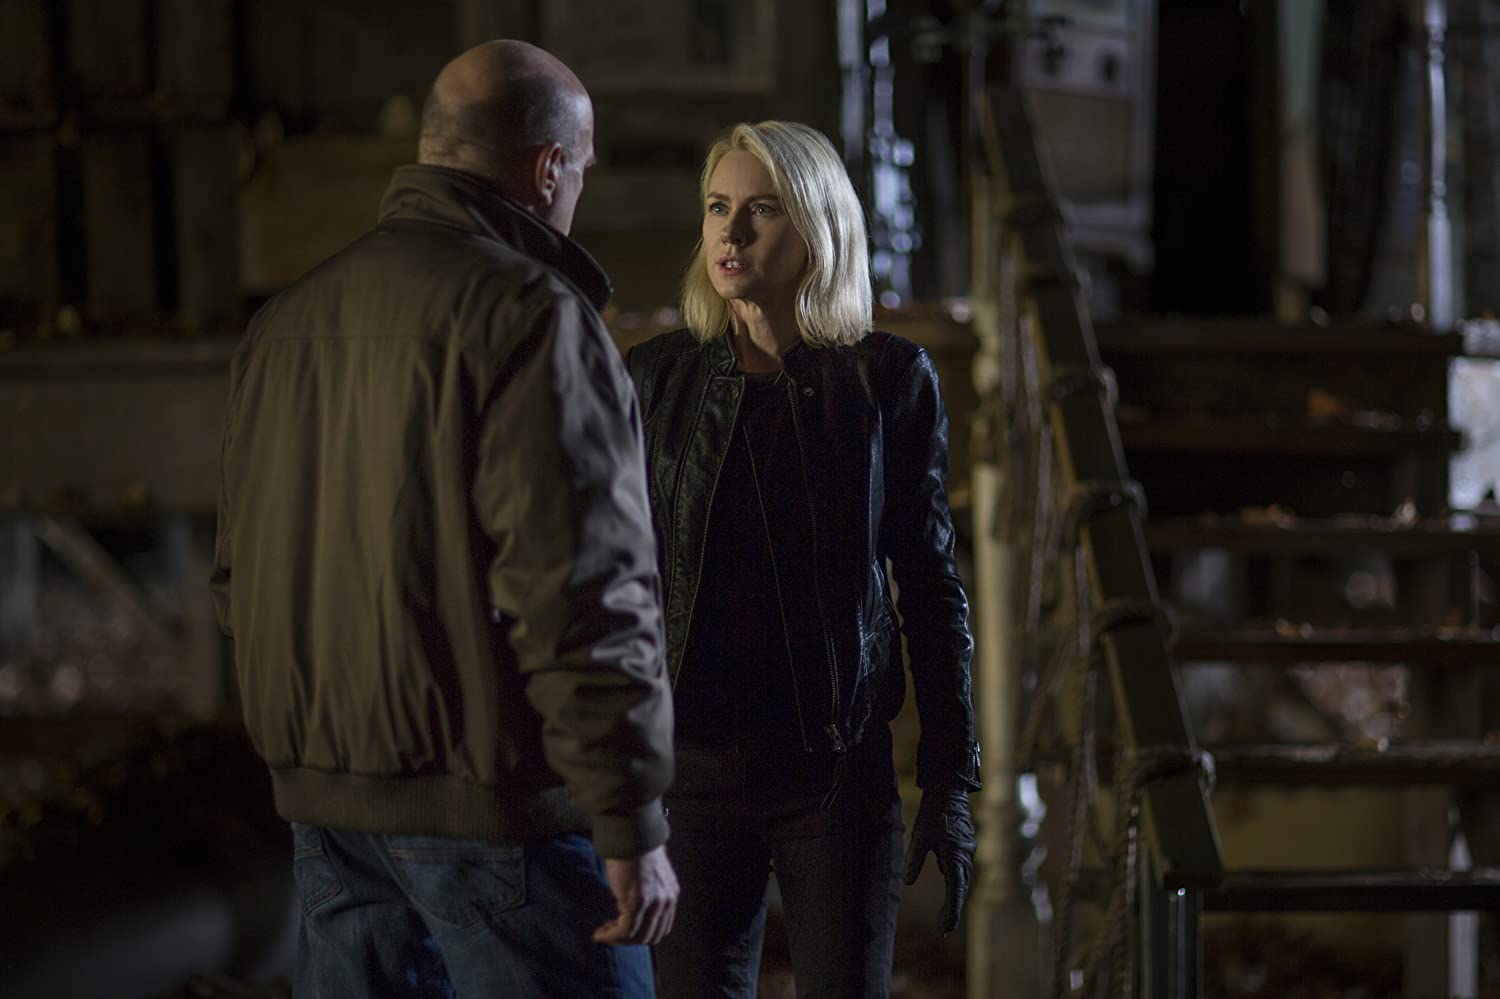 Dean Norris and Naomi Watts in The Book of Henry (2017)